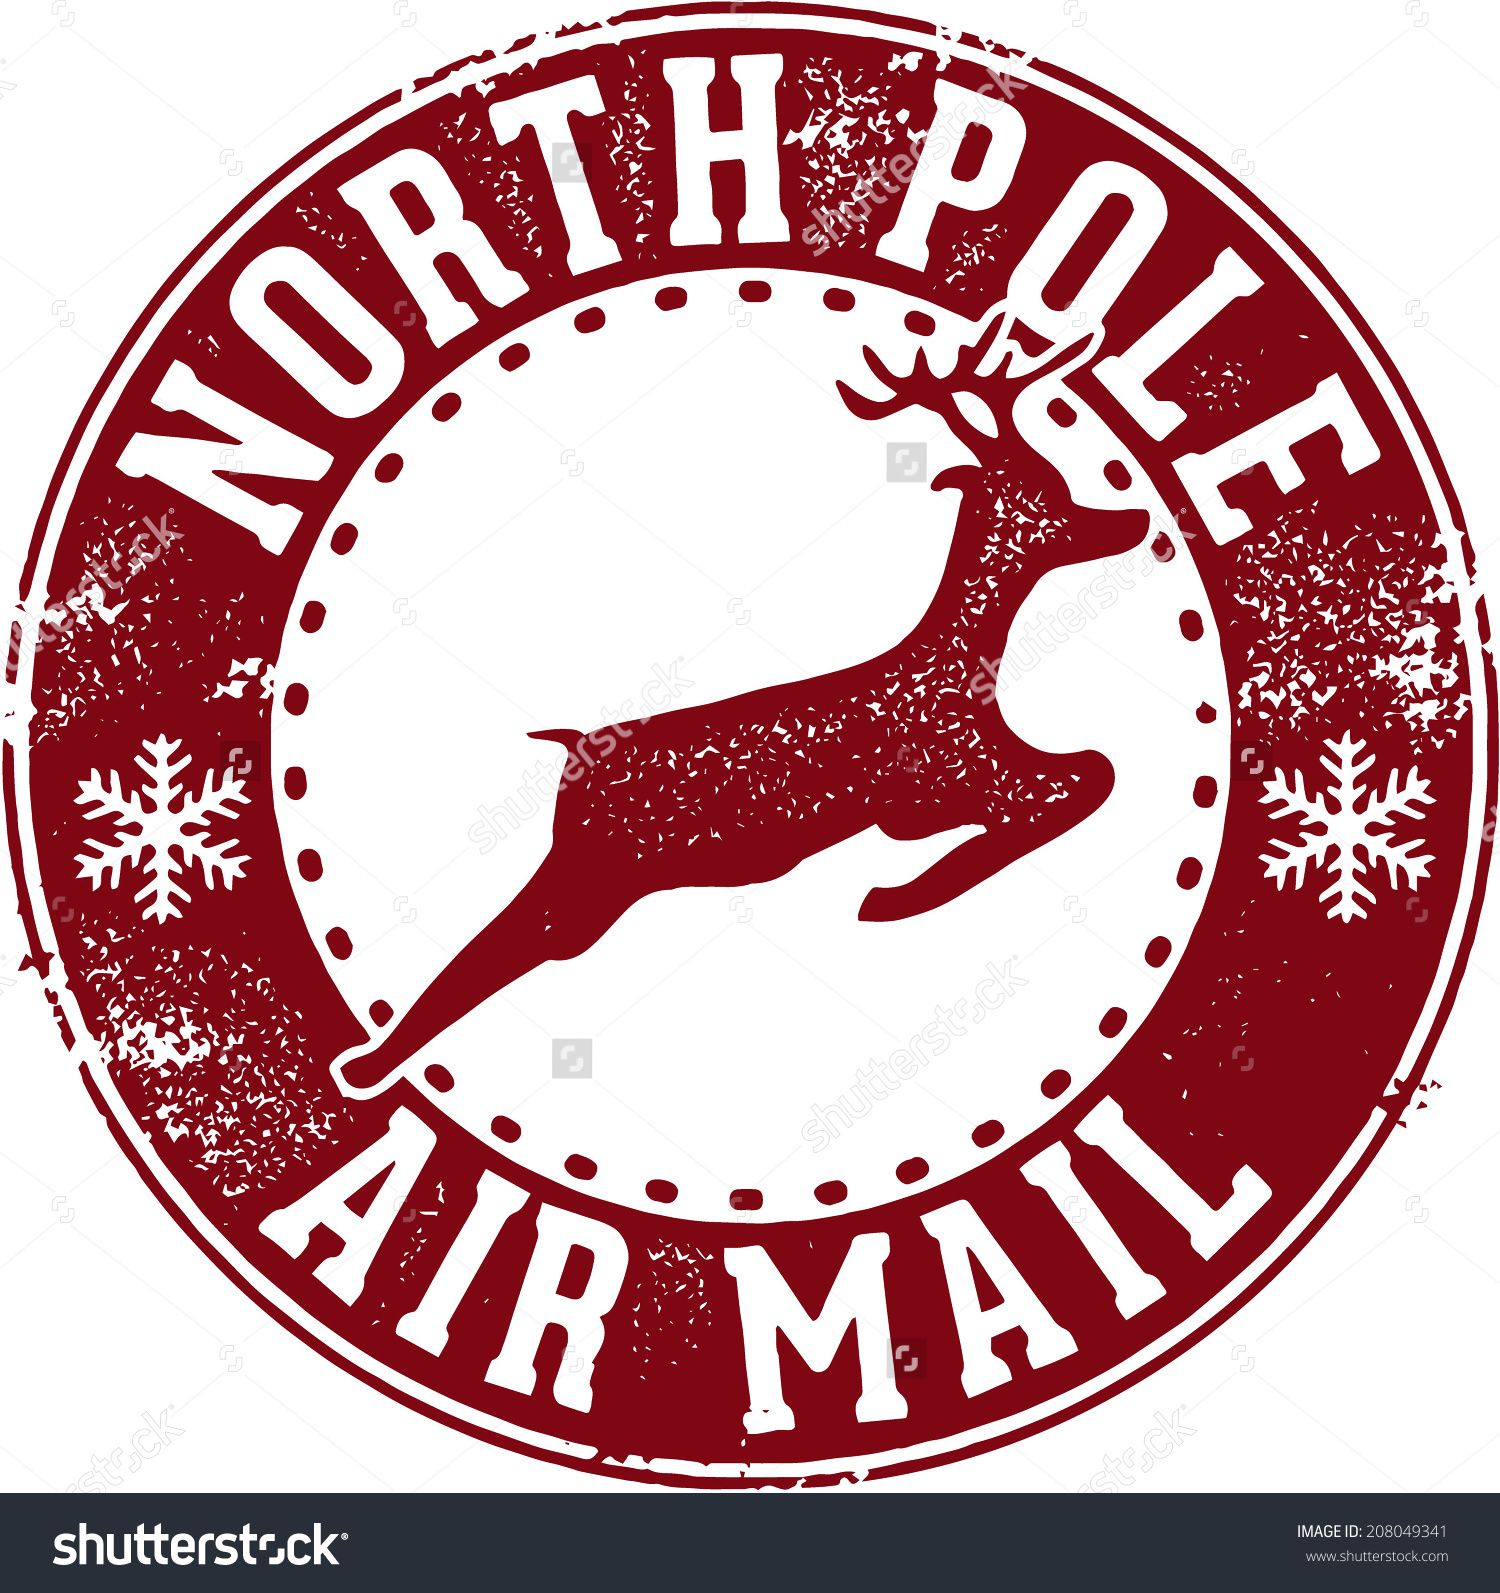 North pole air santa. Stamp clipart christmas mail clipart freeuse download